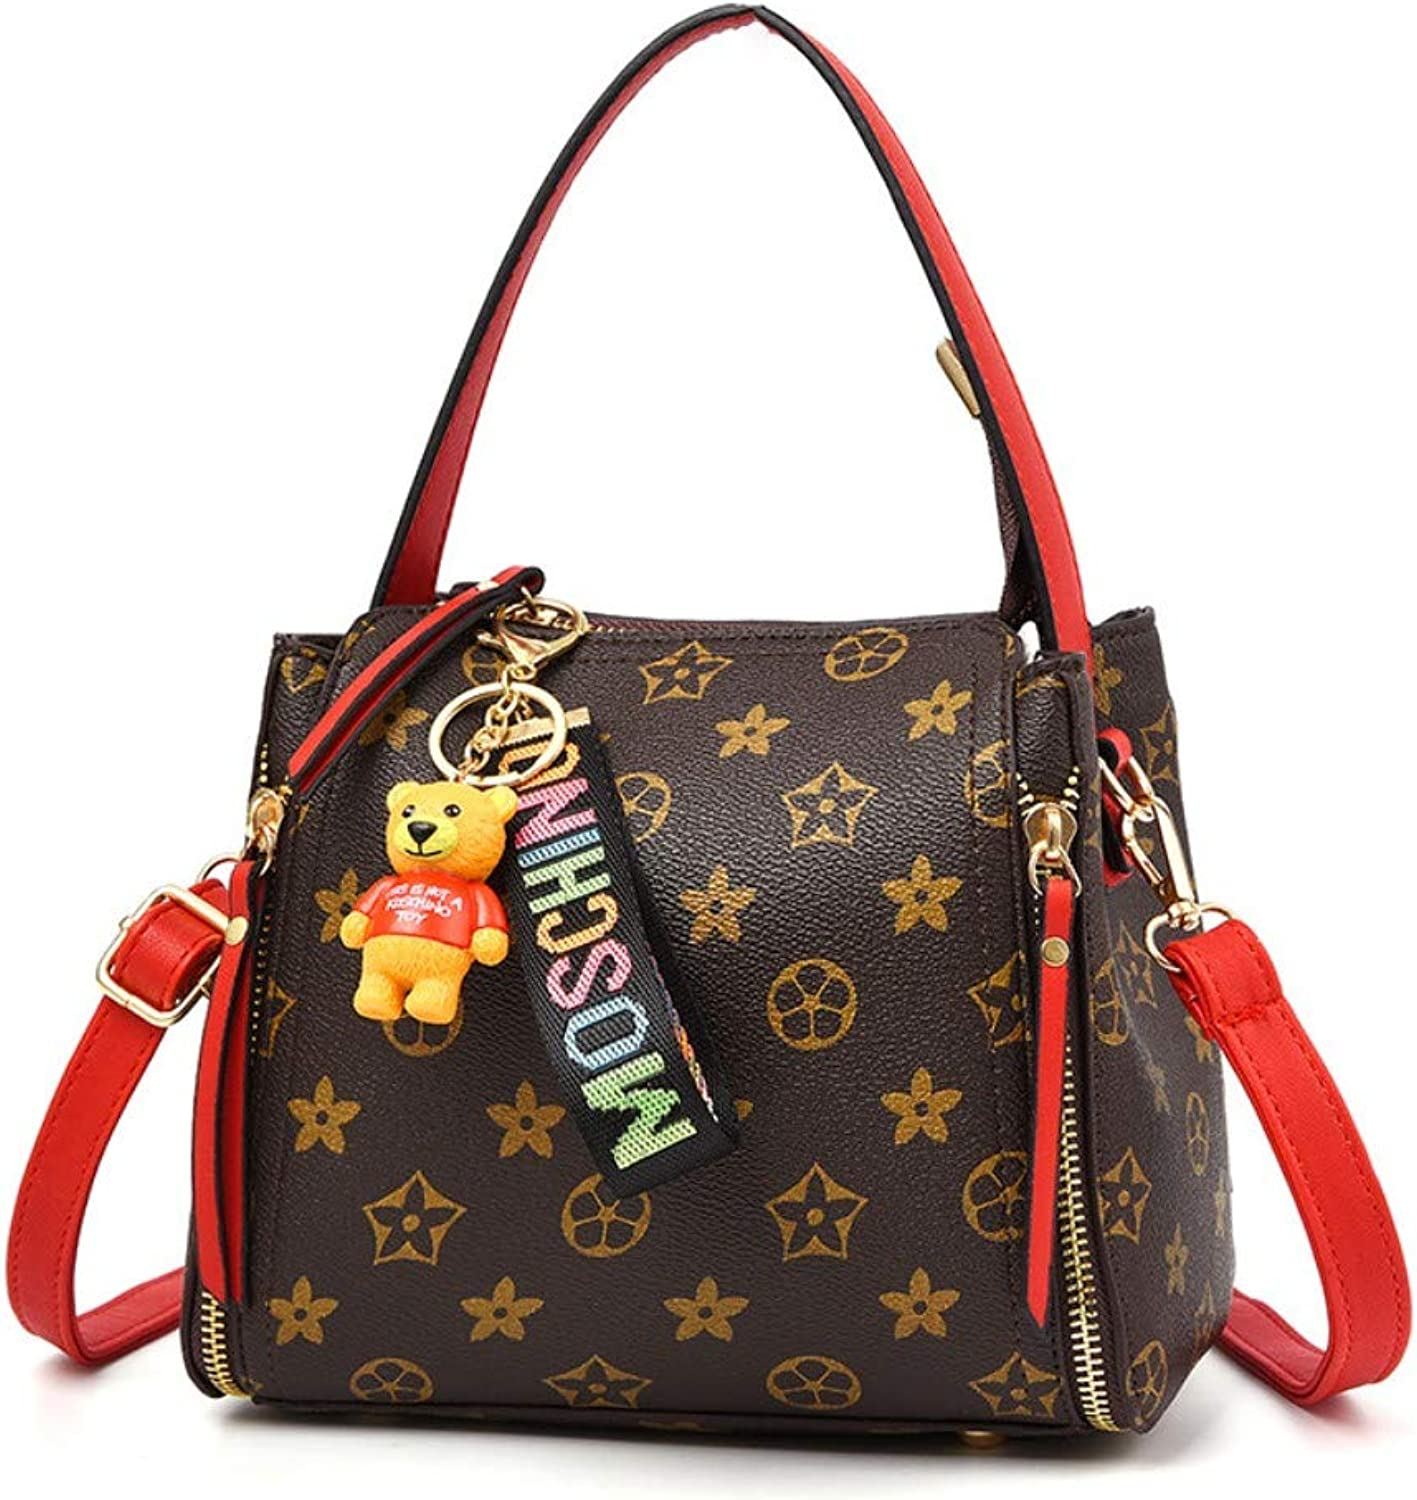 Z.H-H Wild Fashion, Small Fresh Ladies, Casual, Simple, Large-Capacity Personality Single Shoulder Slung Small Square Bag